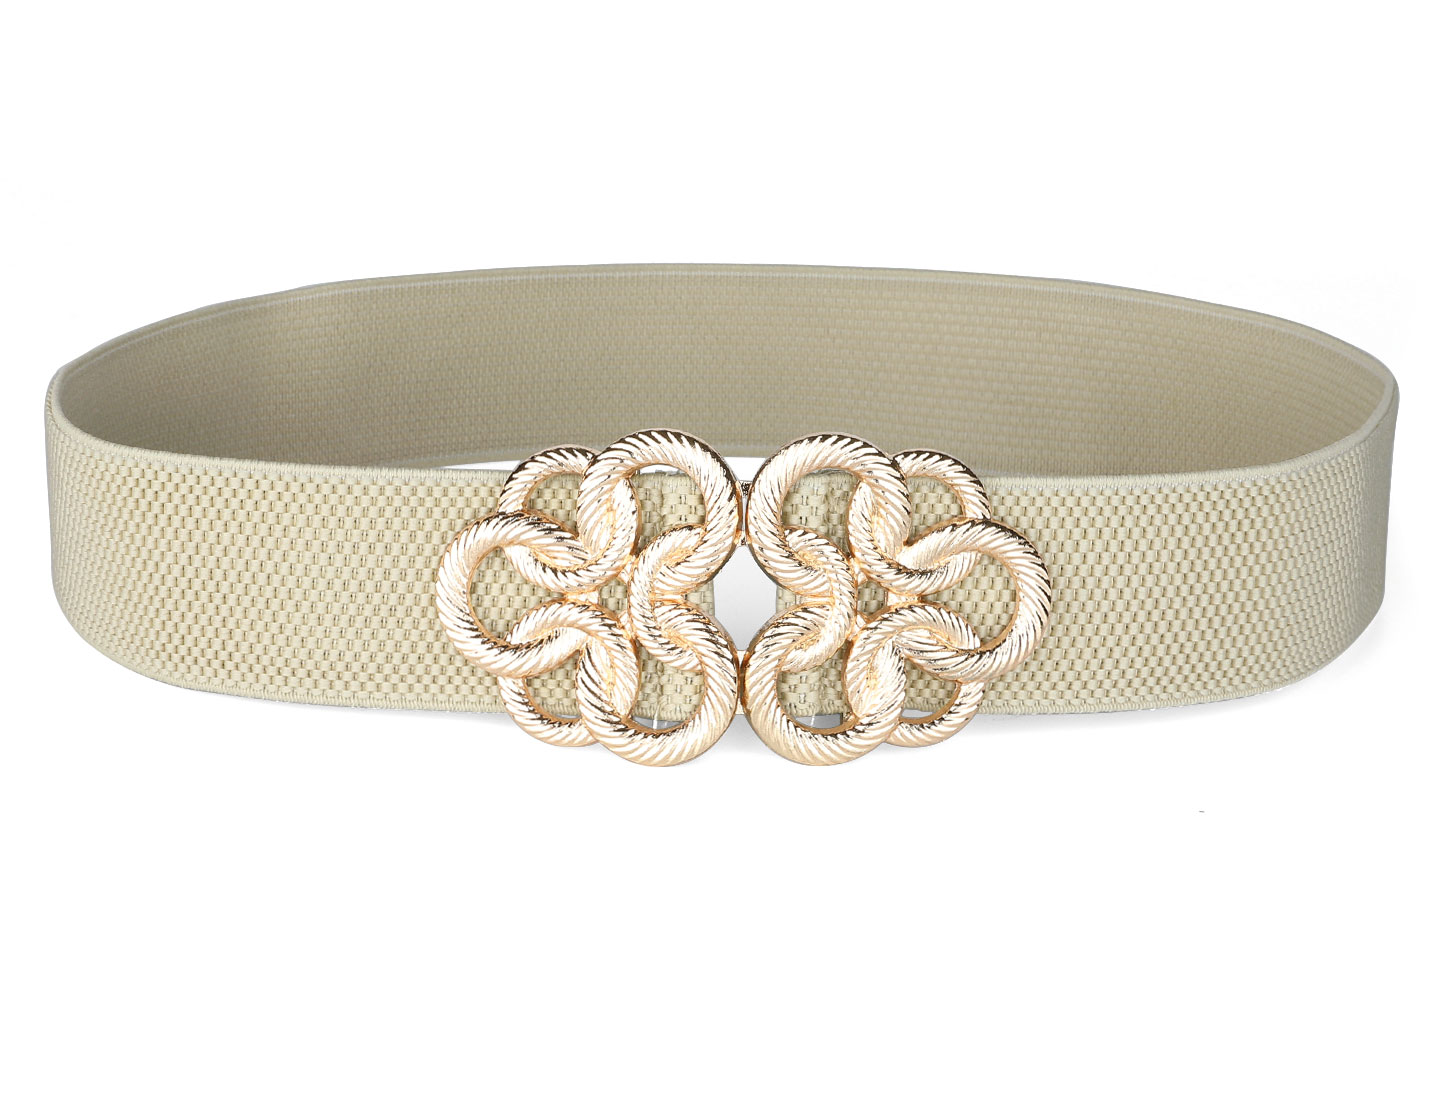 Lady Gold Tone Metal Interlock Buckle Khaki Elastic Waist Cinch Belt Band